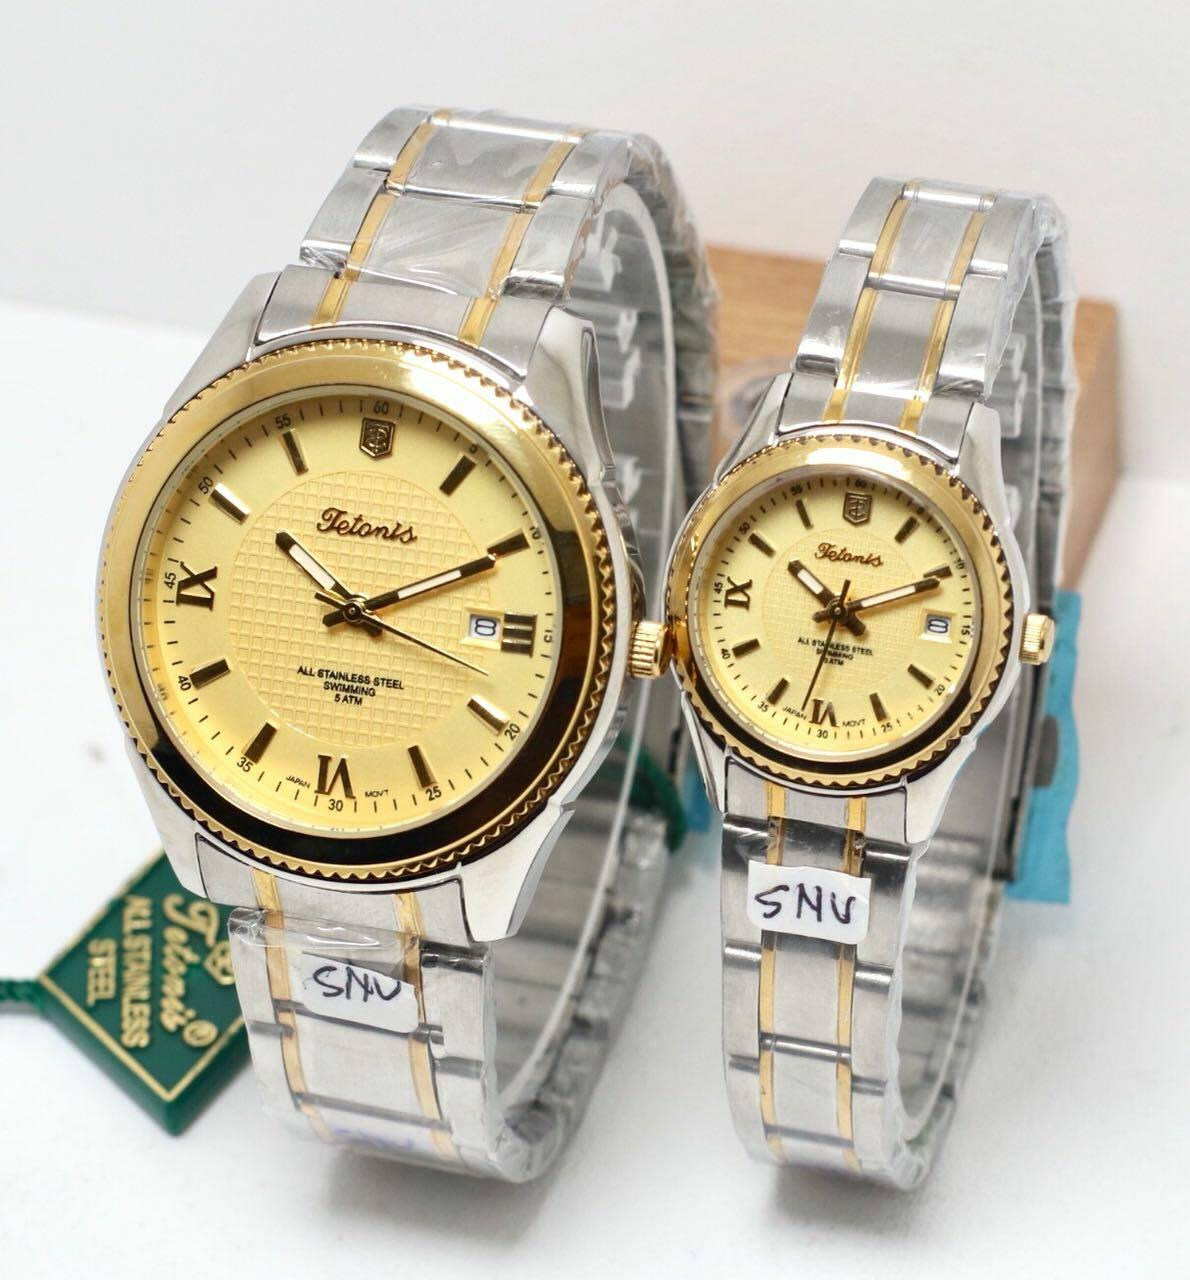 Jam tangan couple Tetonis tanggal aktif